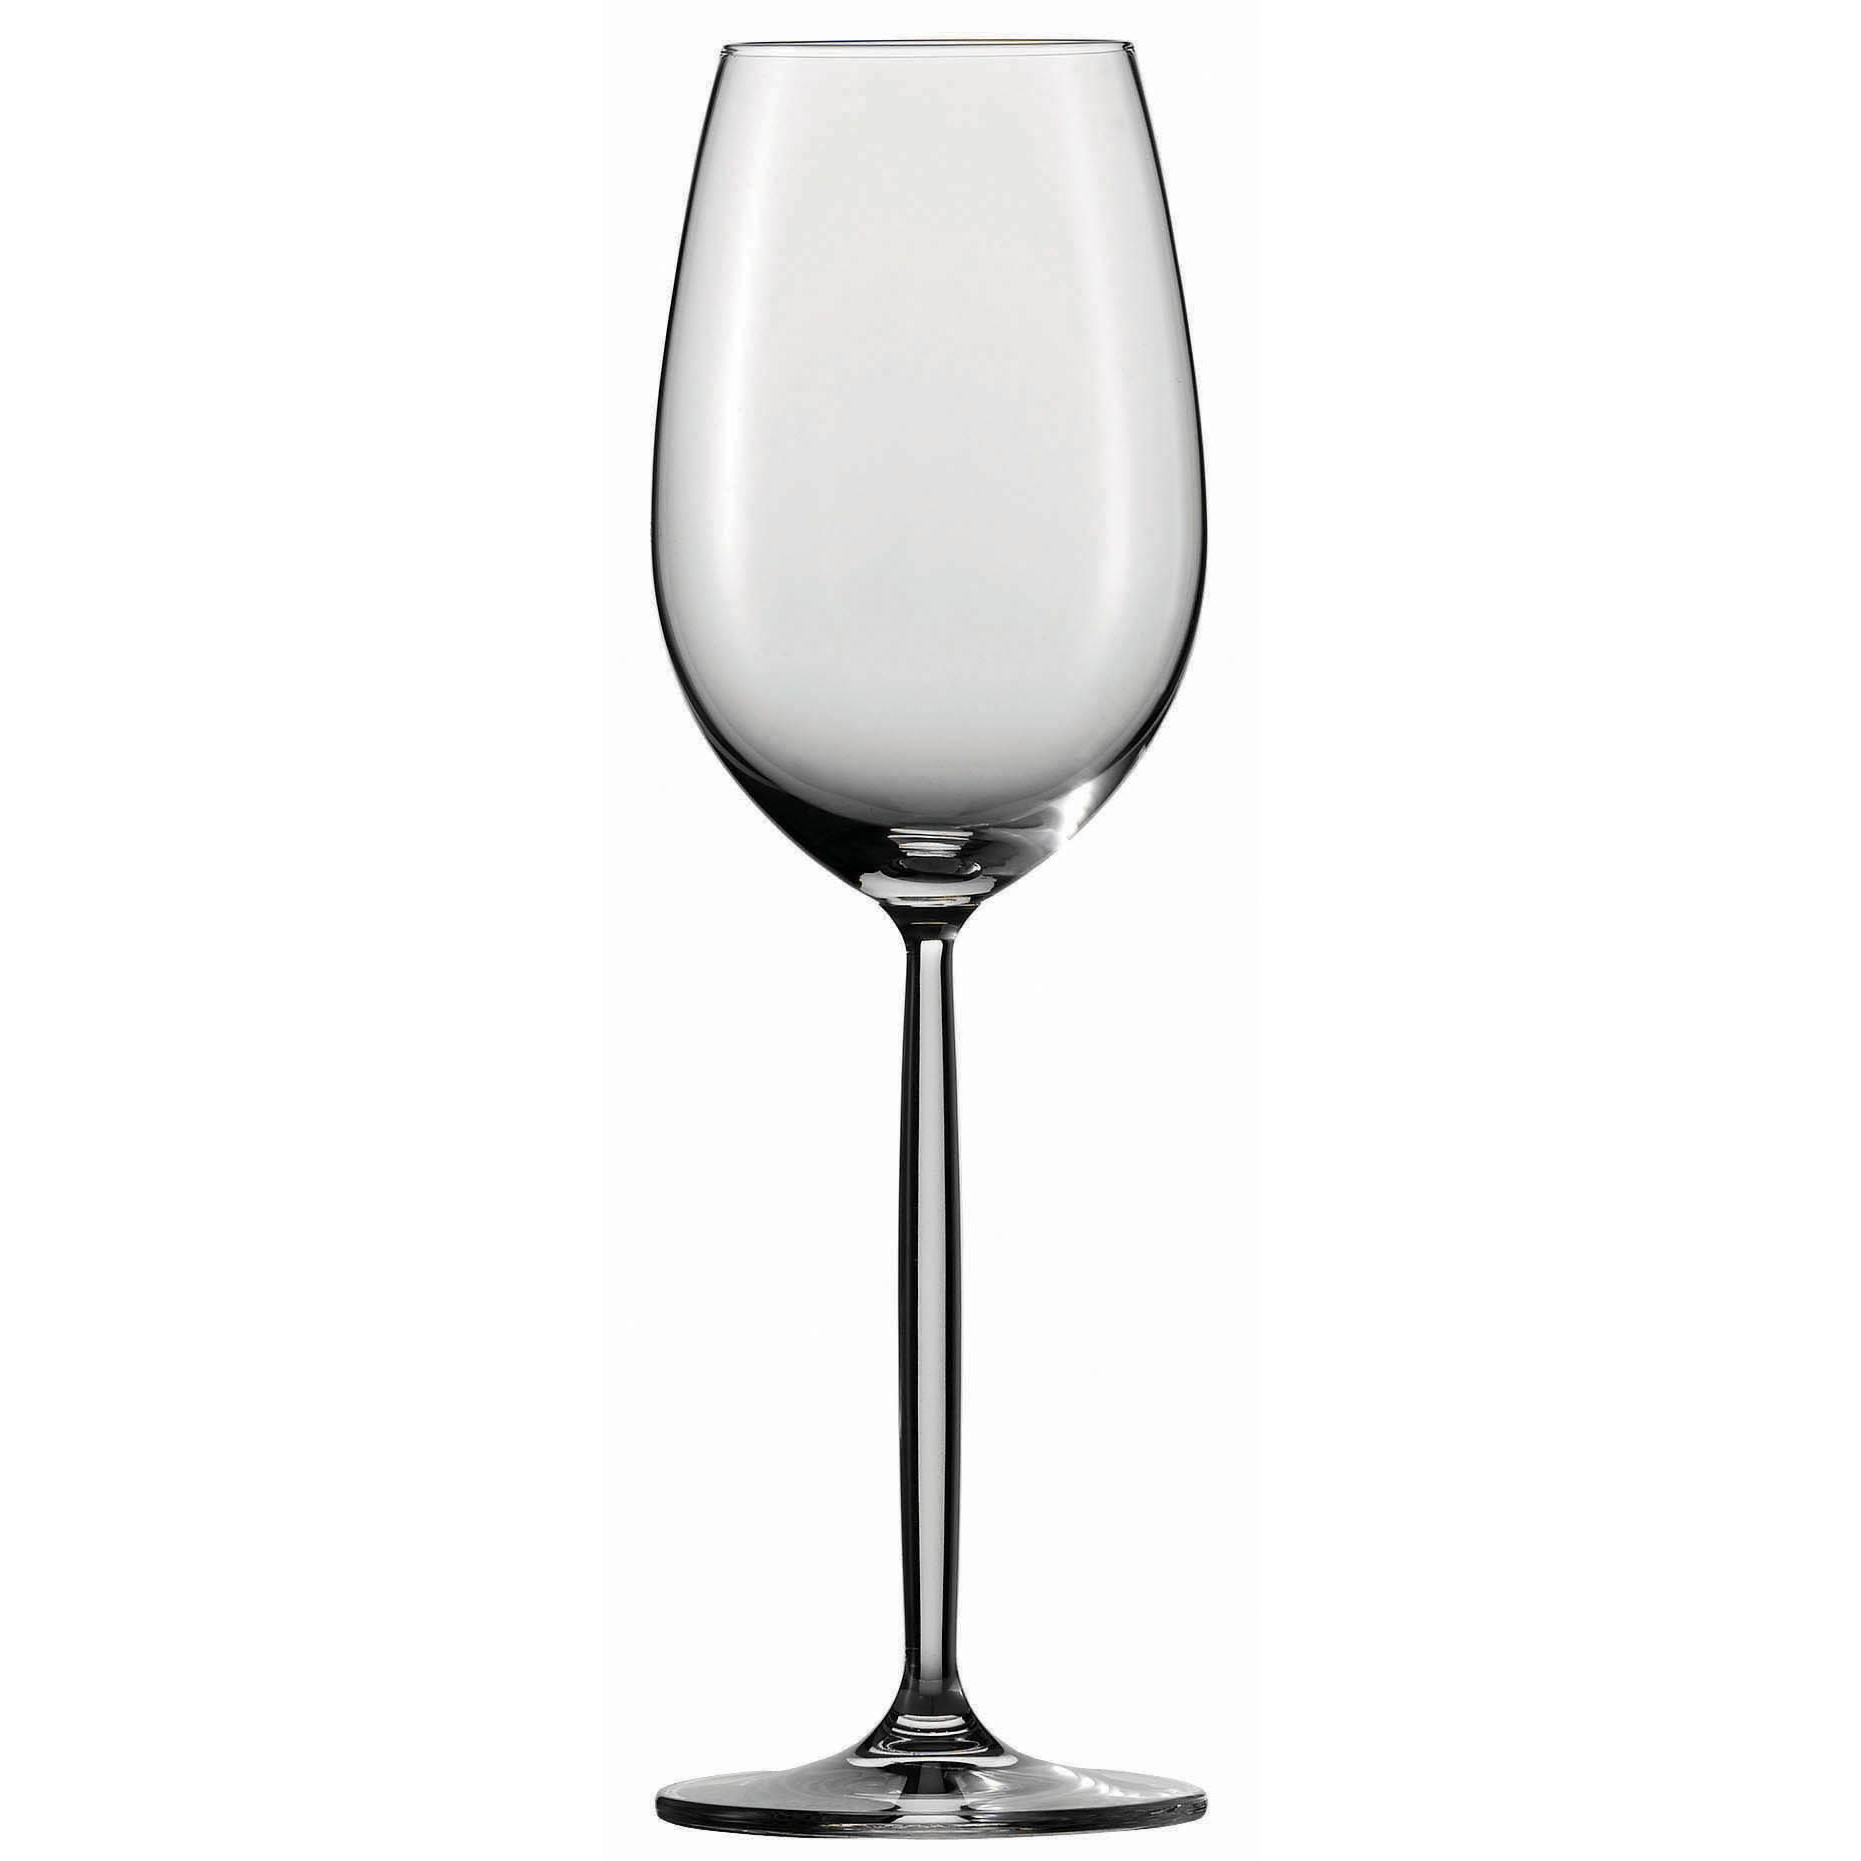 Stolzle Wine Glasses Reviews | Schott Glasses | Schott Zwiesel Wine Glasses